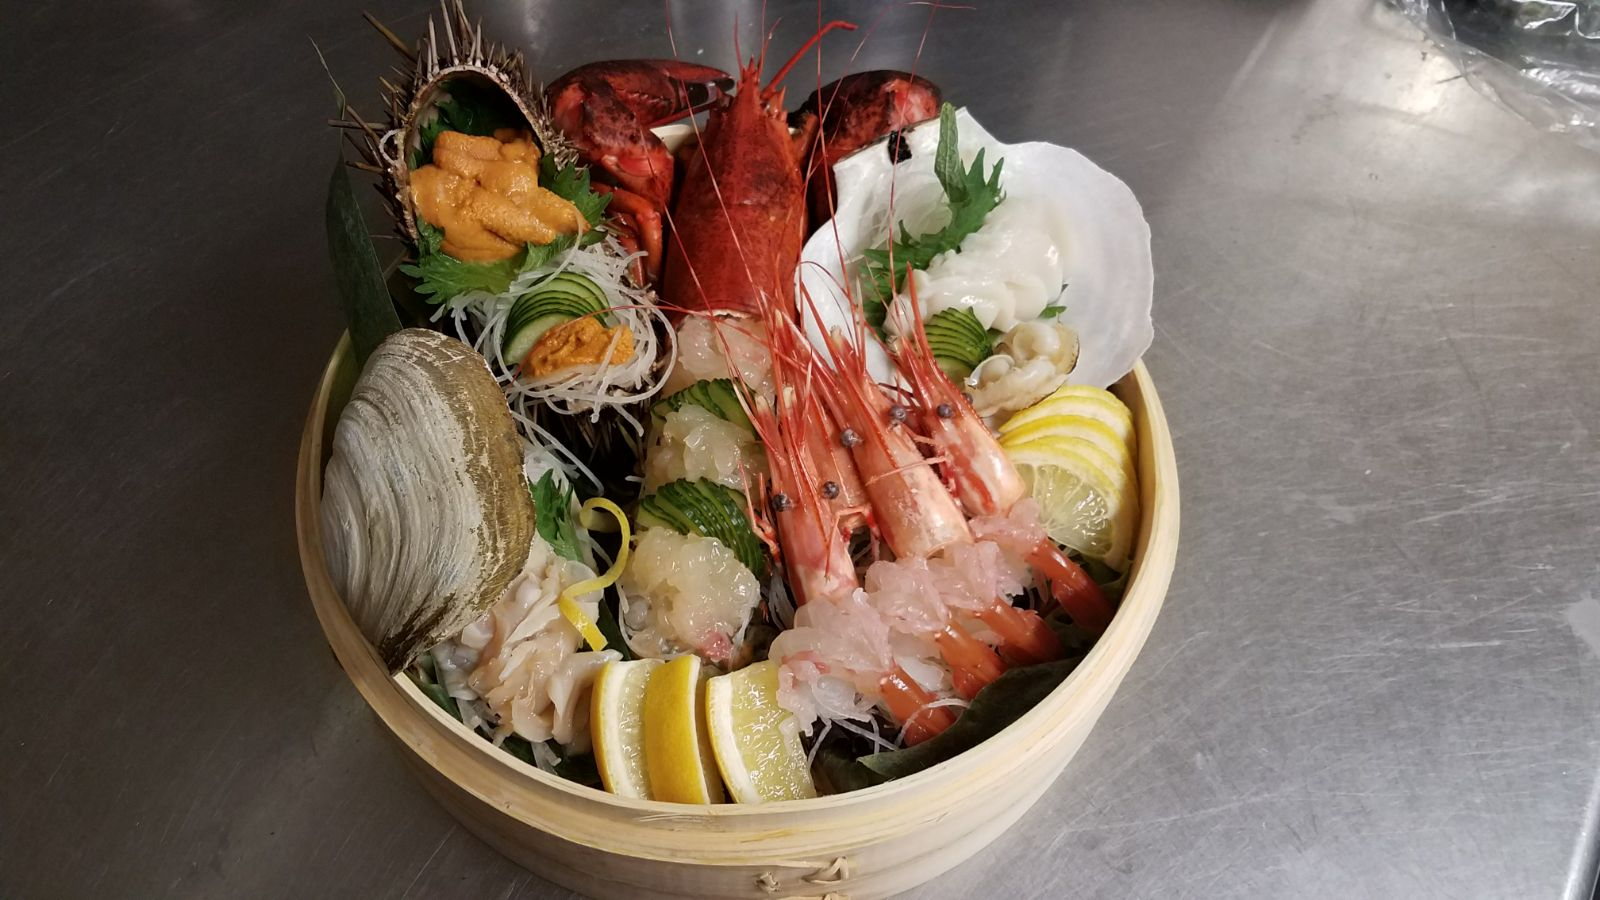 February 2018 - Grand Prize Winner - A Pot of Exotic Live Seafood Sashimi